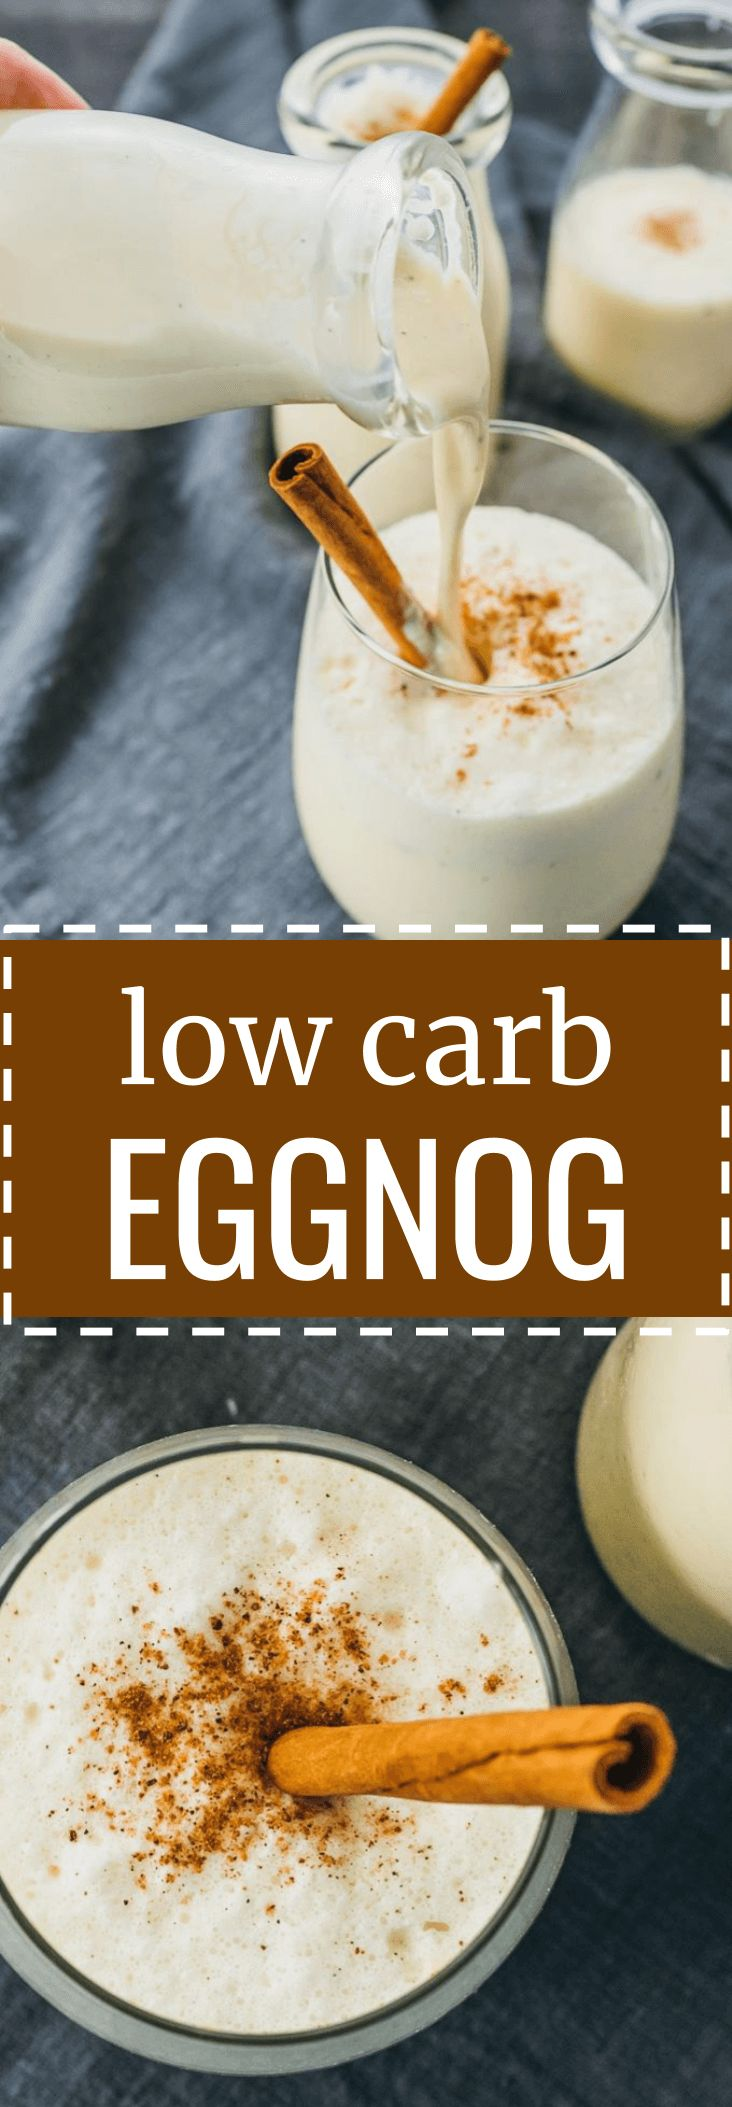 Easy low carb eggnog drink using almond milk. keto / low carb / diet / atkins / induction / meals / recipes / easy / dinner / lunch / foods / healthy / gluten free / recipe / drinks / cookies / alcohol / homemade / desserts / cocktail / spiked / rum / punch / dip / bourbon / breakfast / shots / christmas / gift / bottle / brownies / party / hot / holiday / thanksgiving / how to make / ingredients / non alcoholic / best / traditional / without alcohol #eggnog #keto #LowCarb